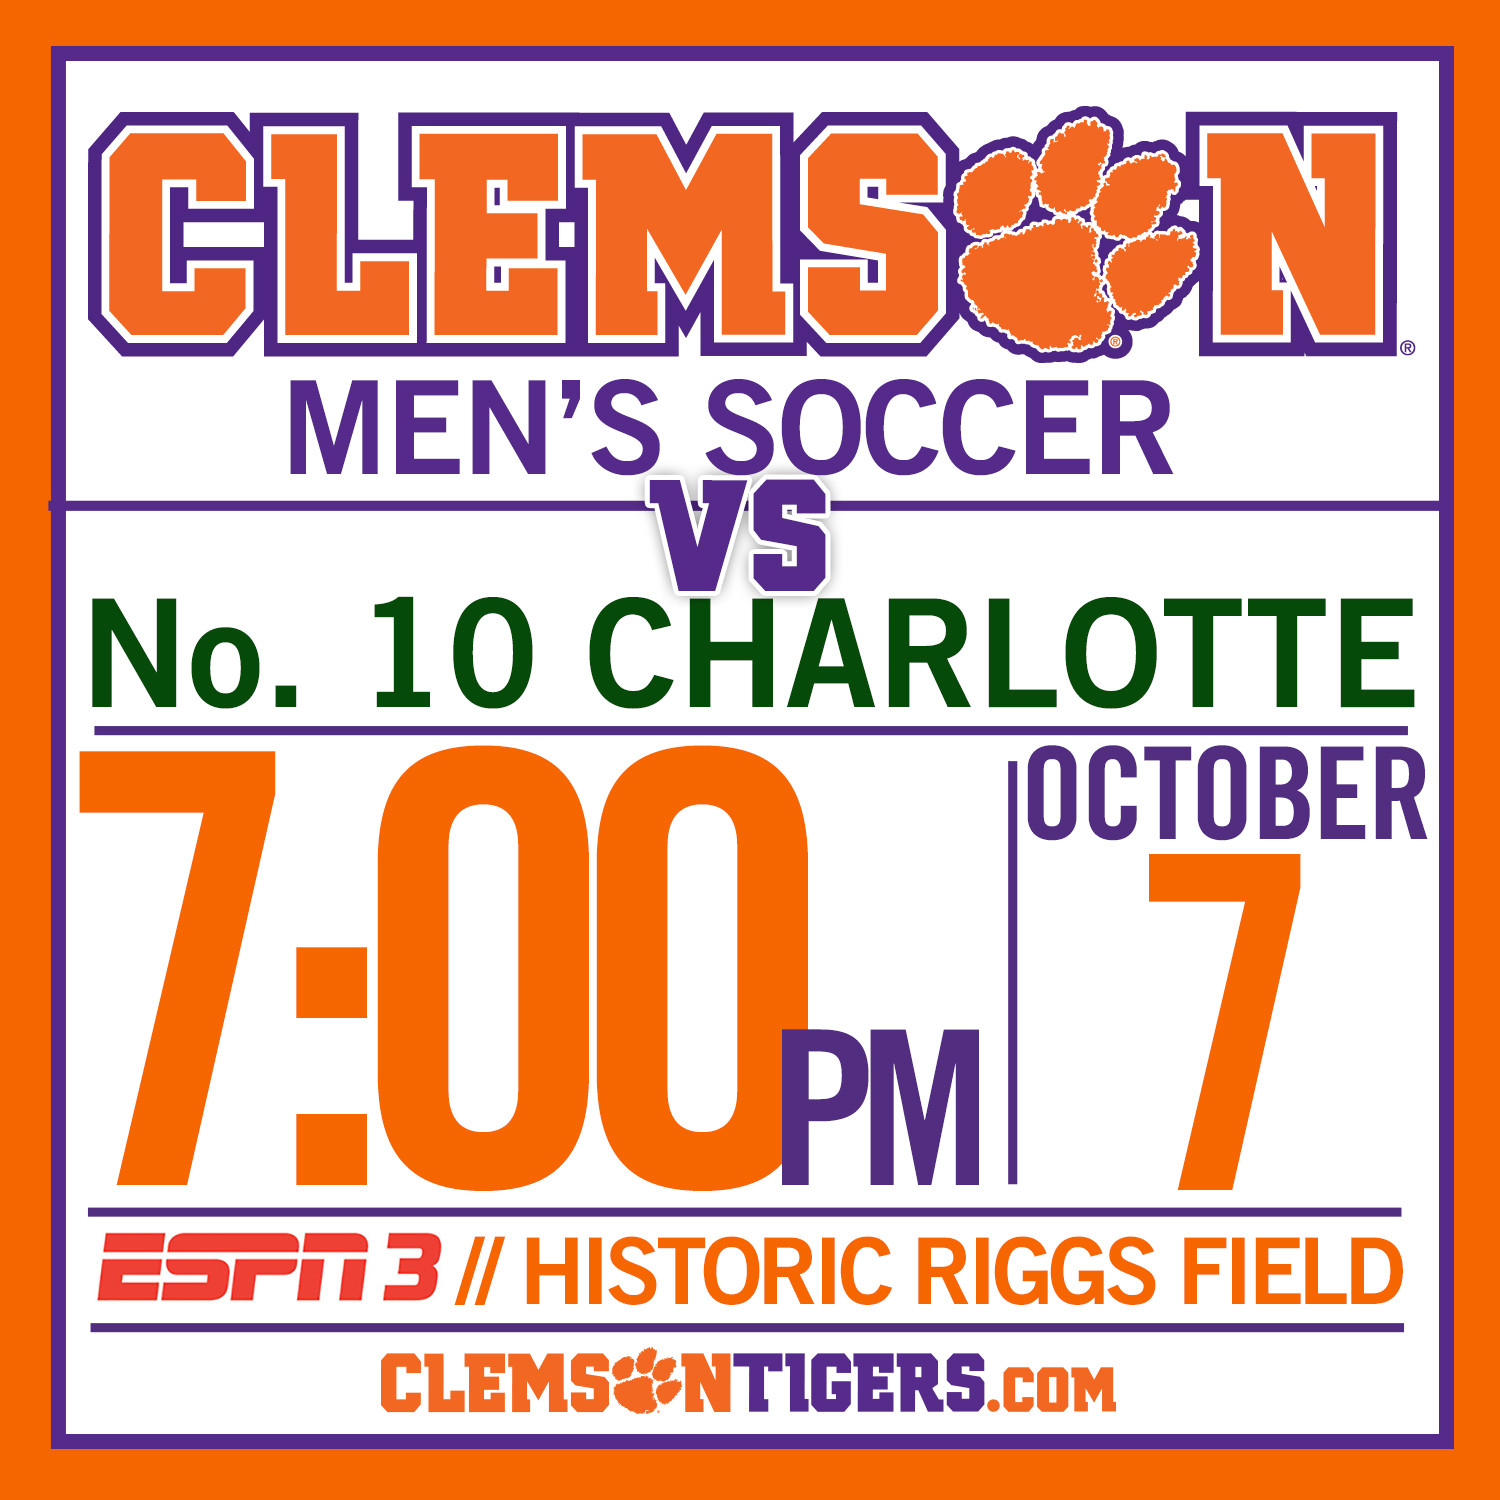 Clemson Hosts No. 10 Charlotte Tuesday